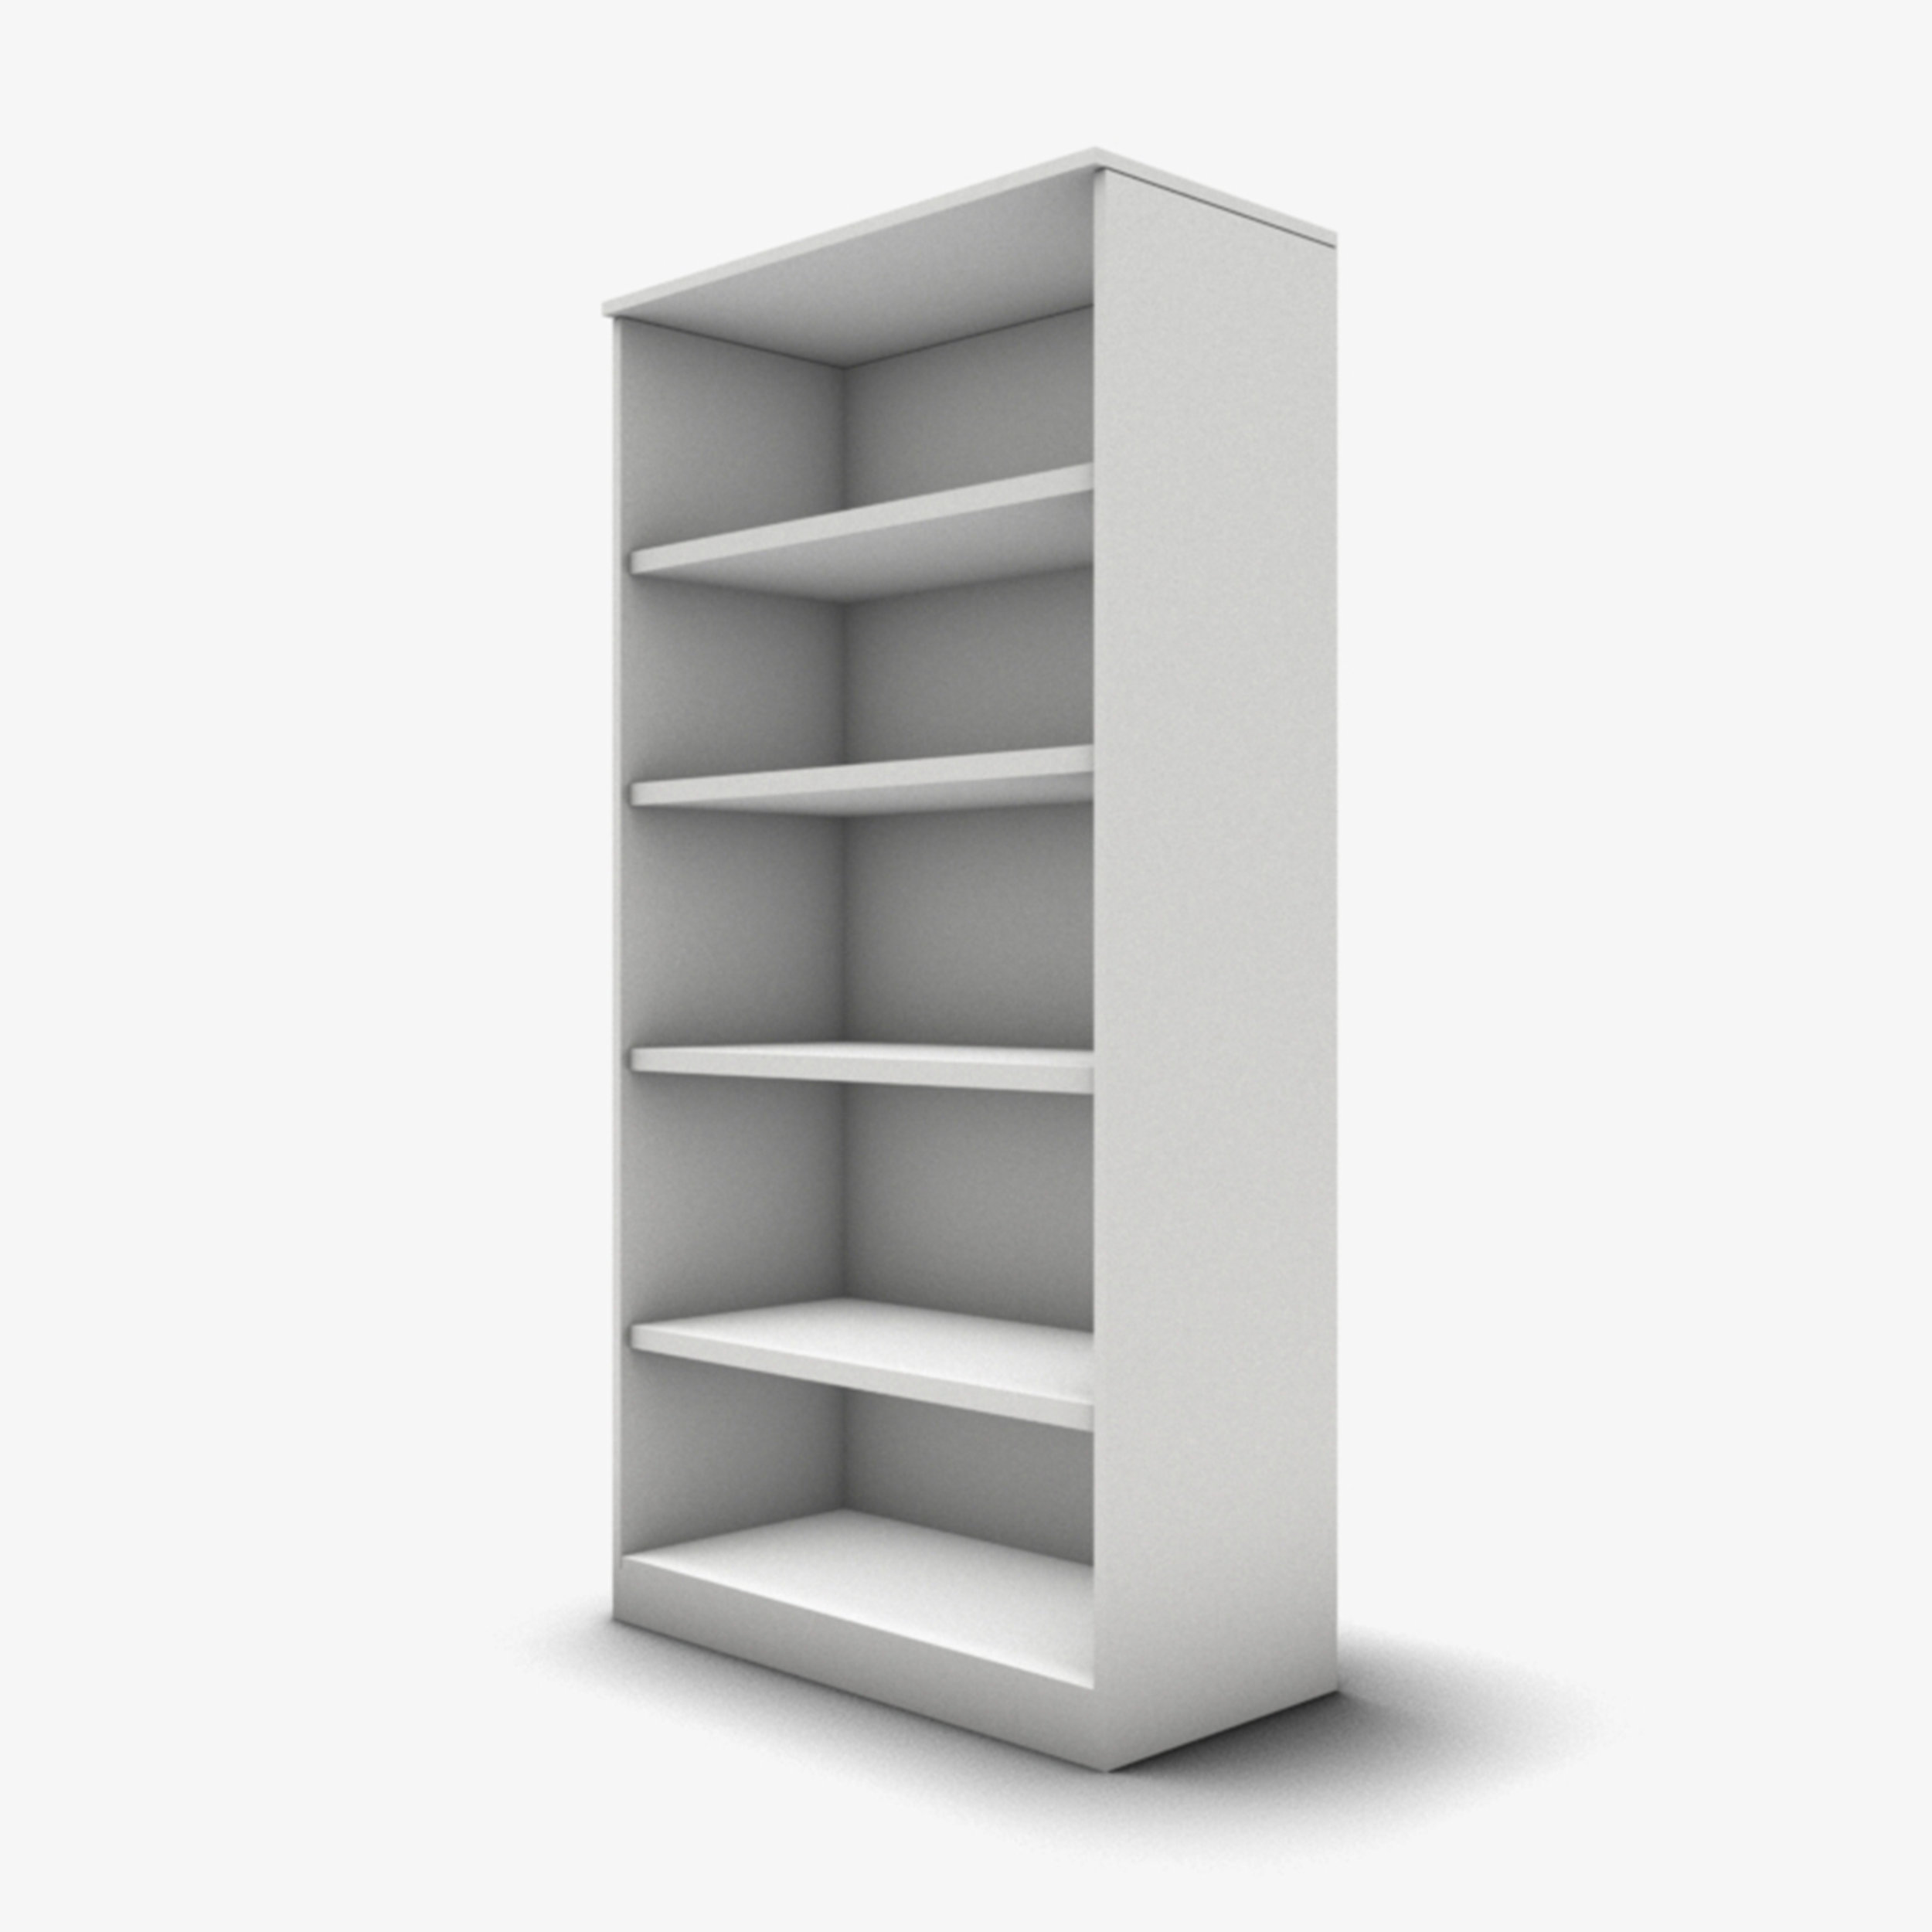 uplan OPEN SHELF CABINET storage.jpg